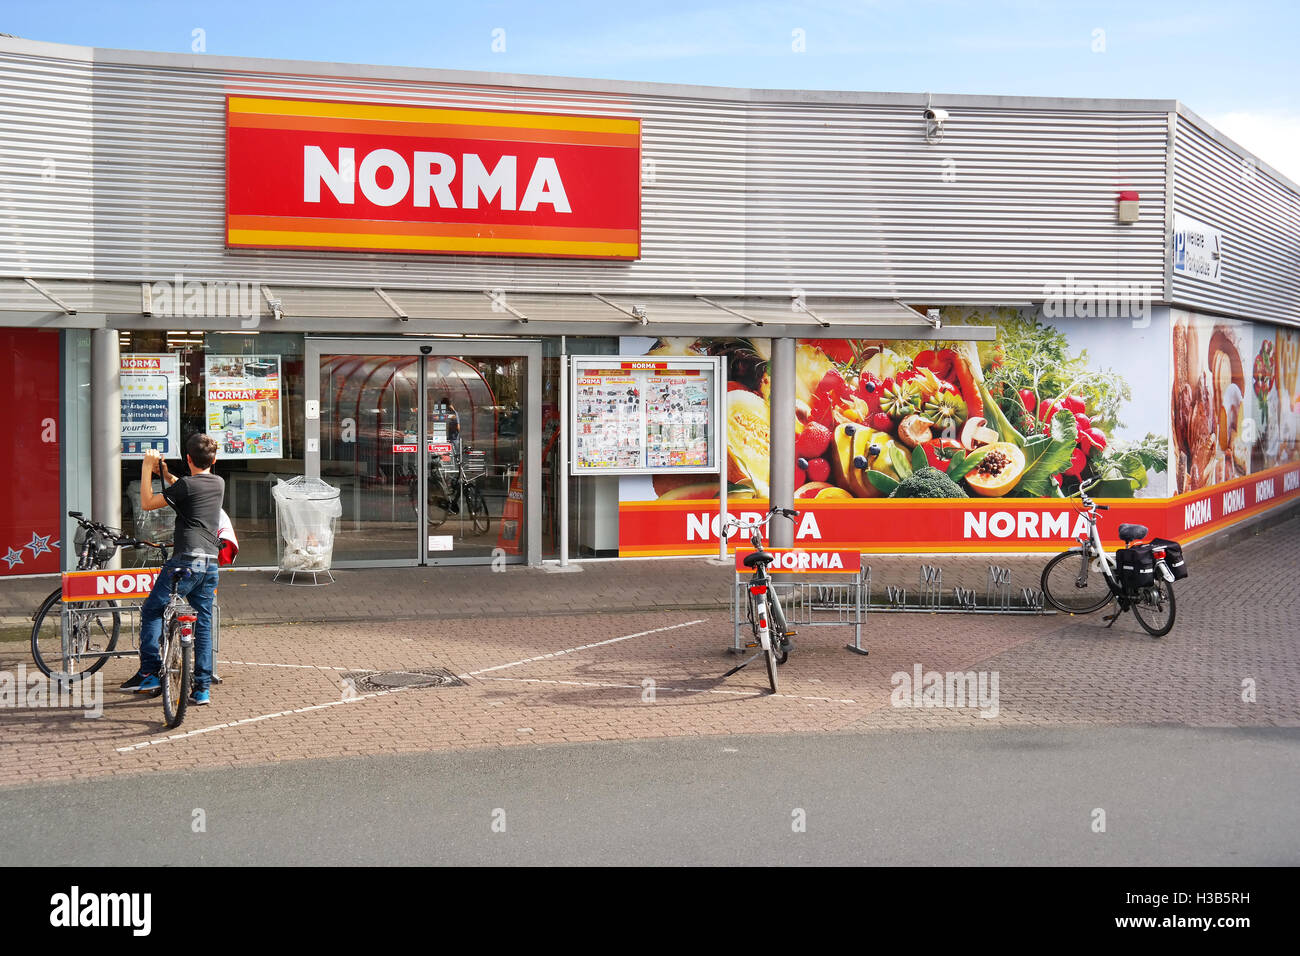 Entrance of Norma discount supermarket. - Stock Image